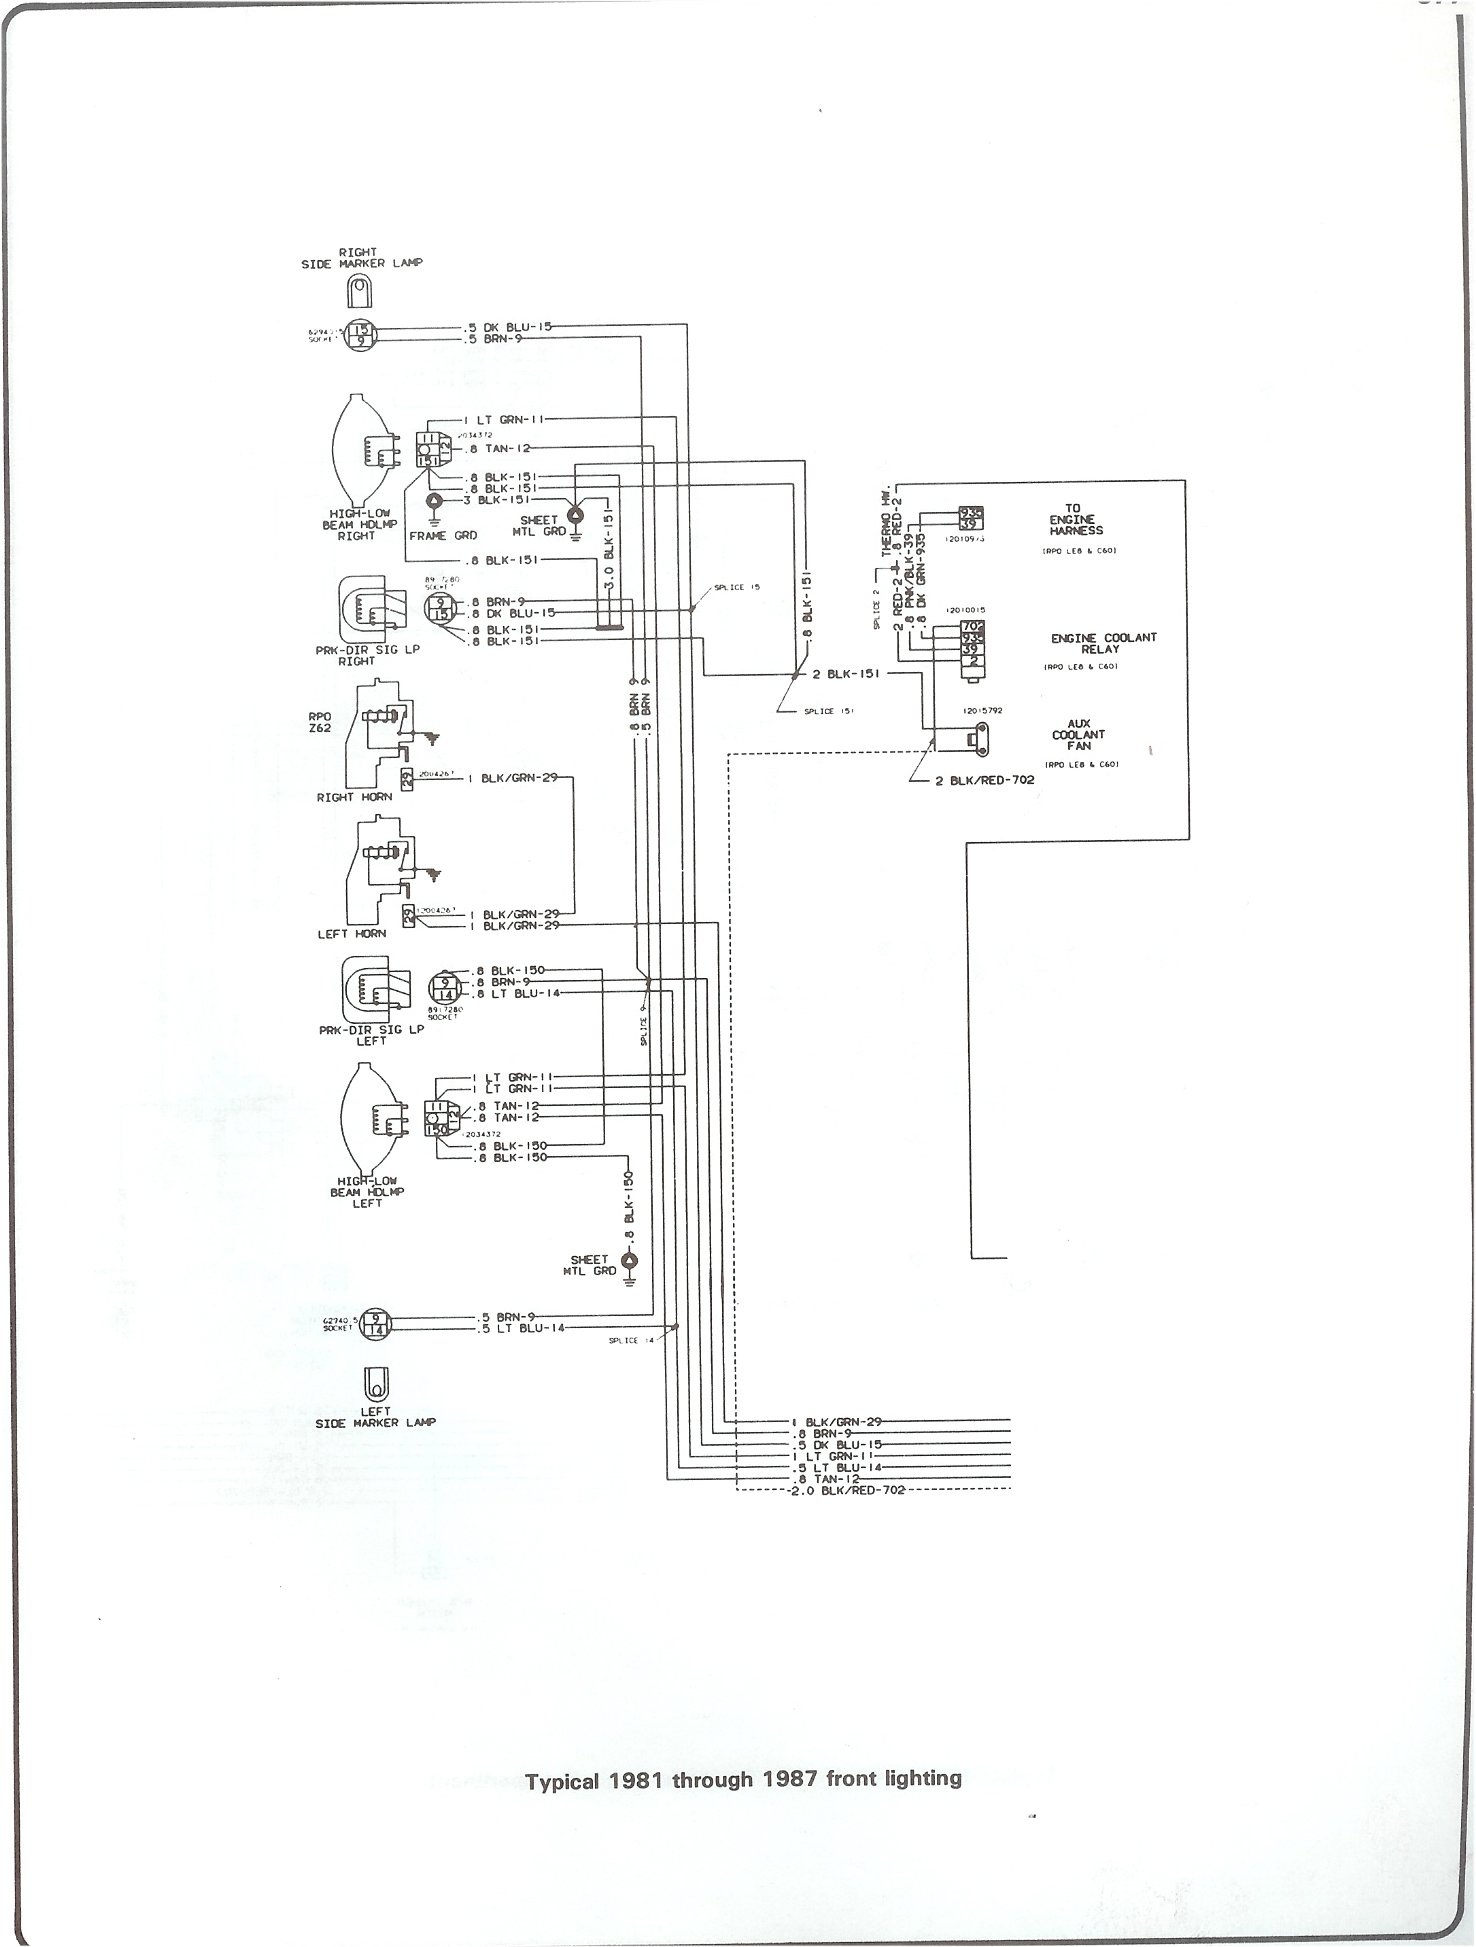 Brake Light Switch Wiring Diagram Blazer Forum Chevy Forums Lamp Schematics 81 87 Front Lighting